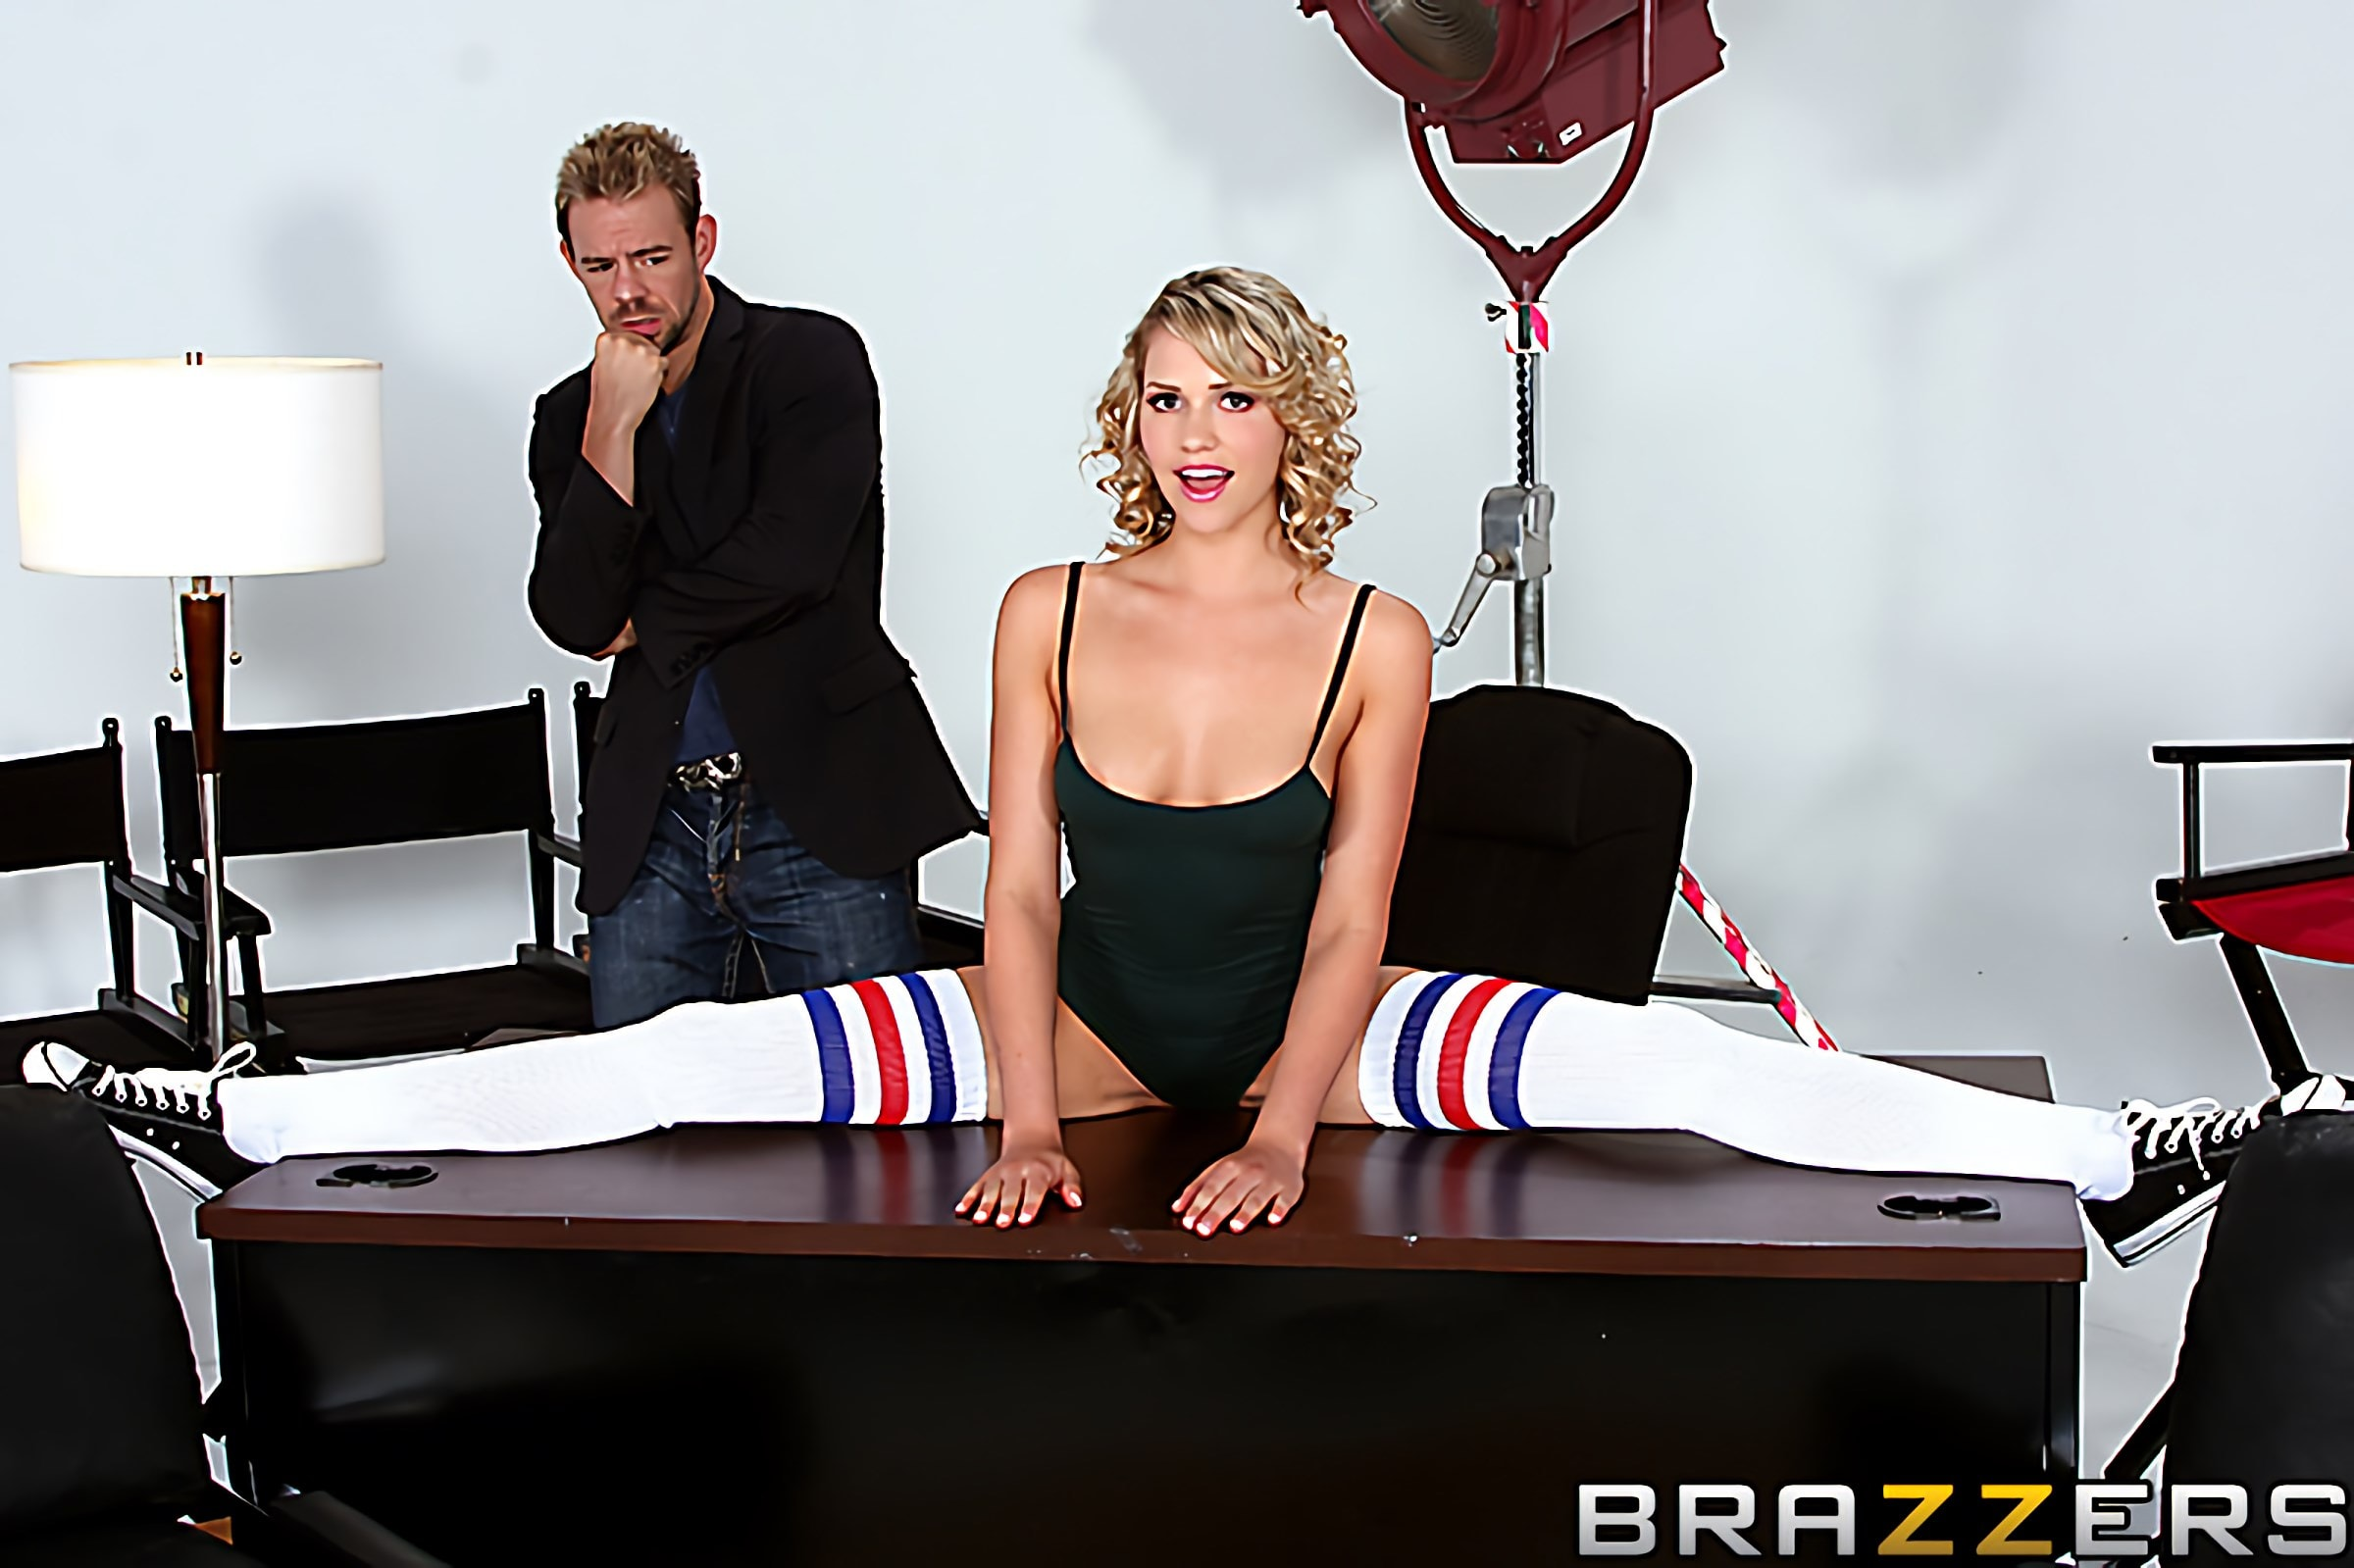 Brazzers 'So You Think You Can Prance' starring Mia Malkova (Photo 2)